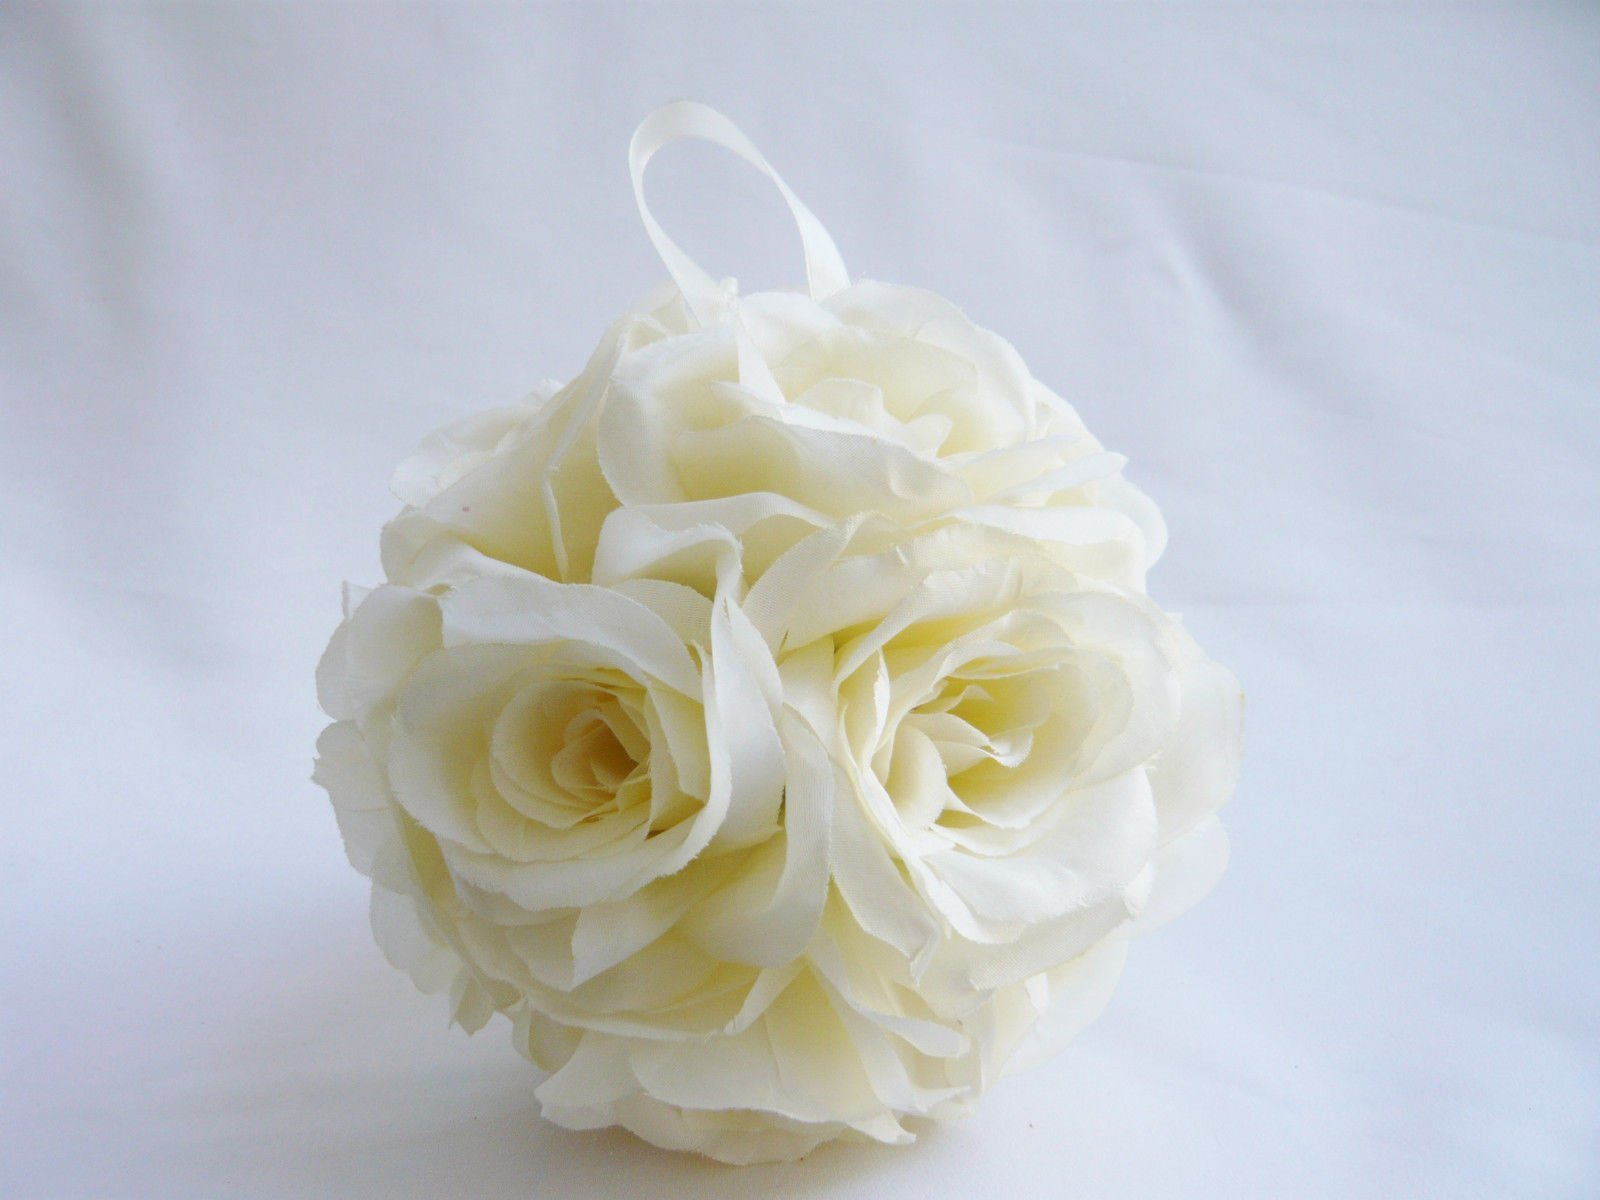 1Pcs-20-Circumference-White-Ivory-Color-Silk-Kissing-Pomander-Flower-Girl-Ball-For-Bridal-Wedding-Decorration-Artificial-Wedding-Party-Ceremony-Satin-Ribbon-4-long